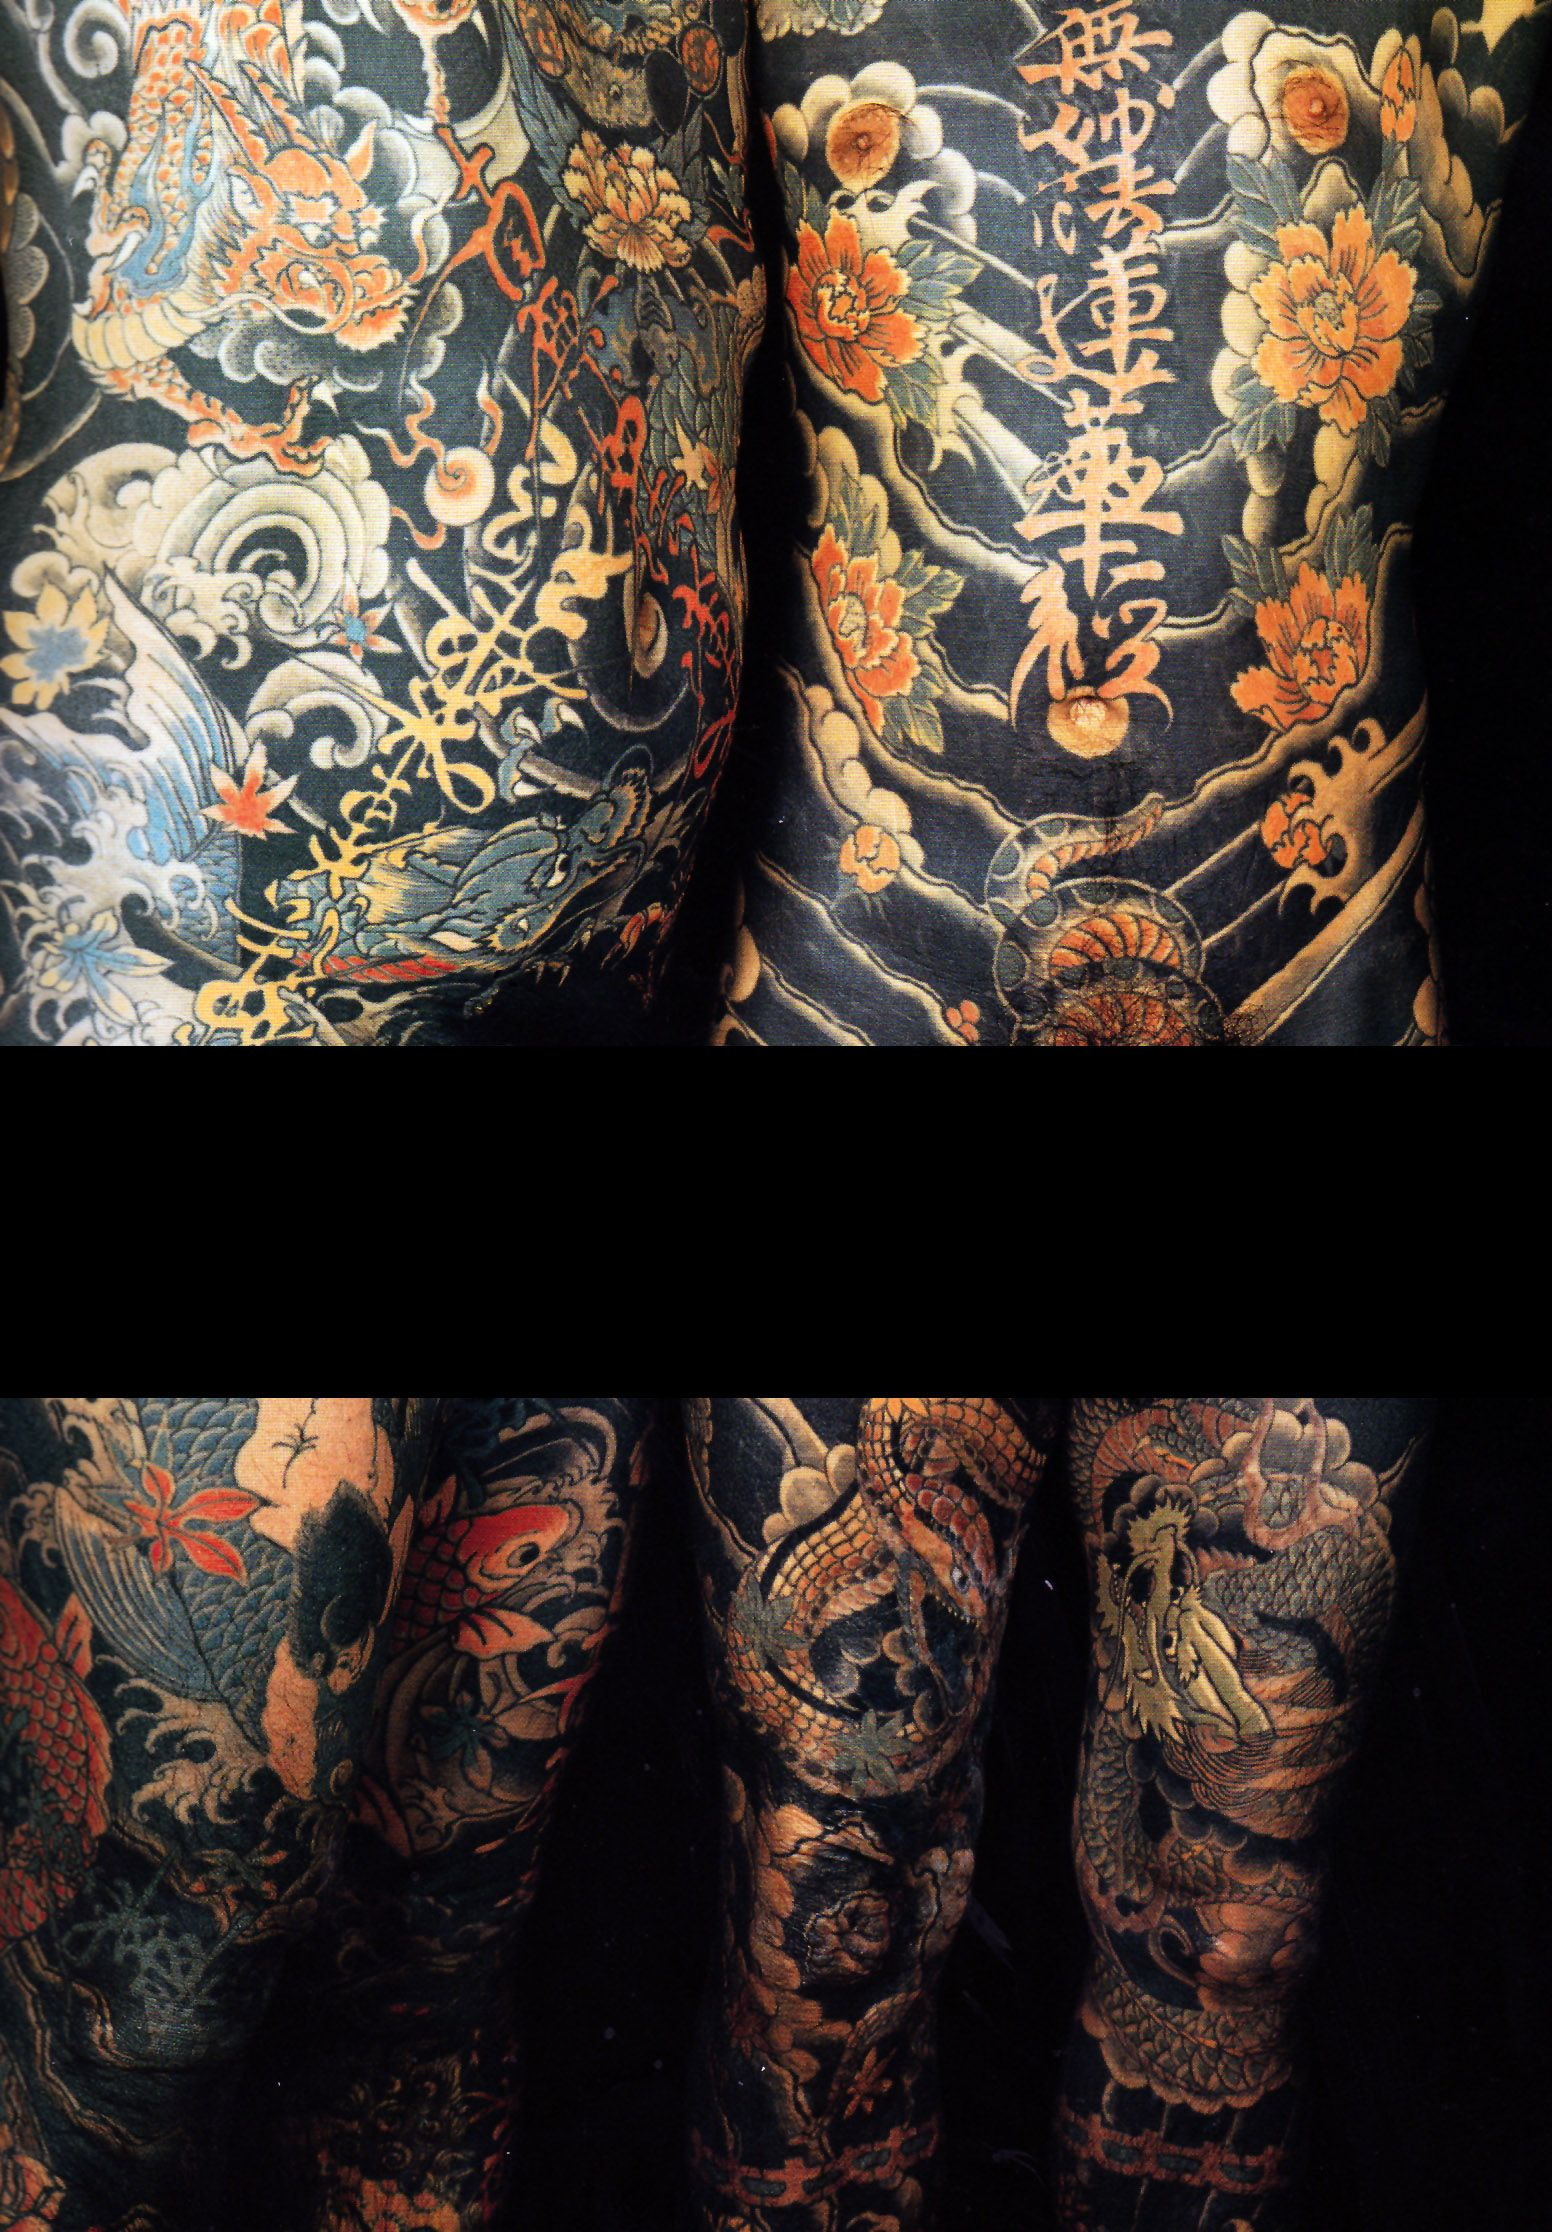 Two Vintage Pre 1980S Japanese Full Body Suit Tattoos By Ideas And Designs